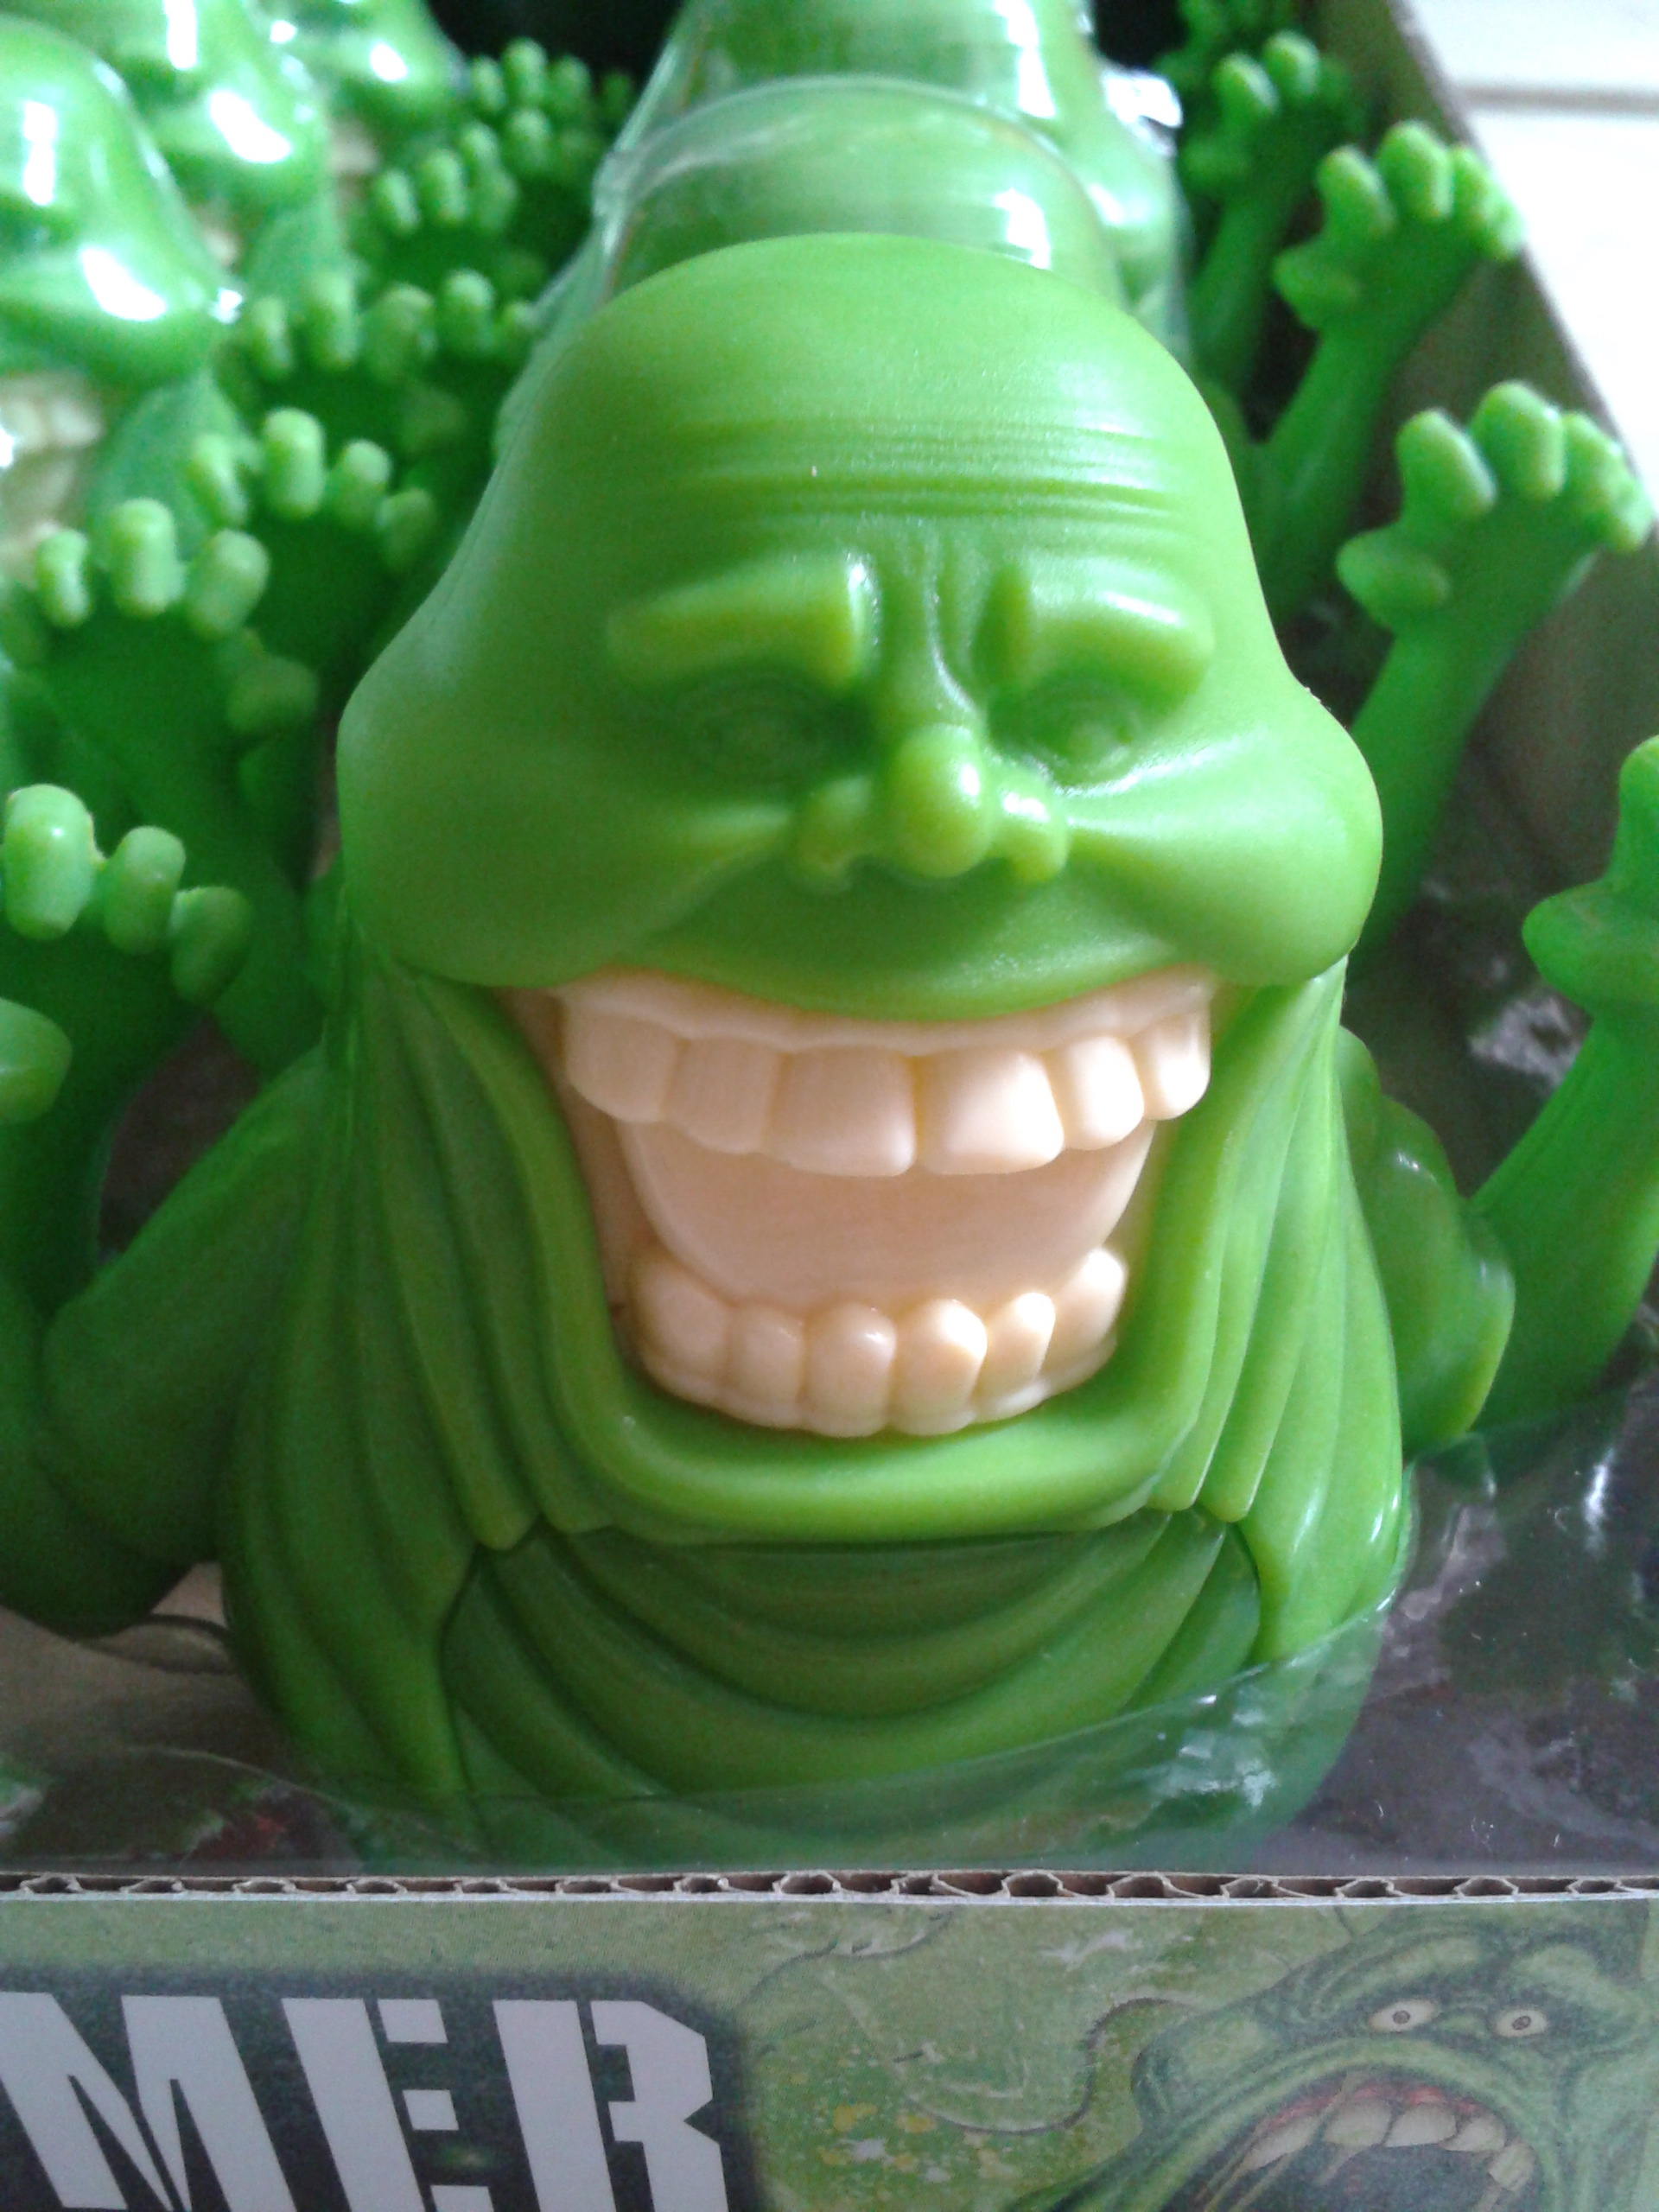 Ghostbusters Slimer Edible Ectoplasm - Candy Head Review